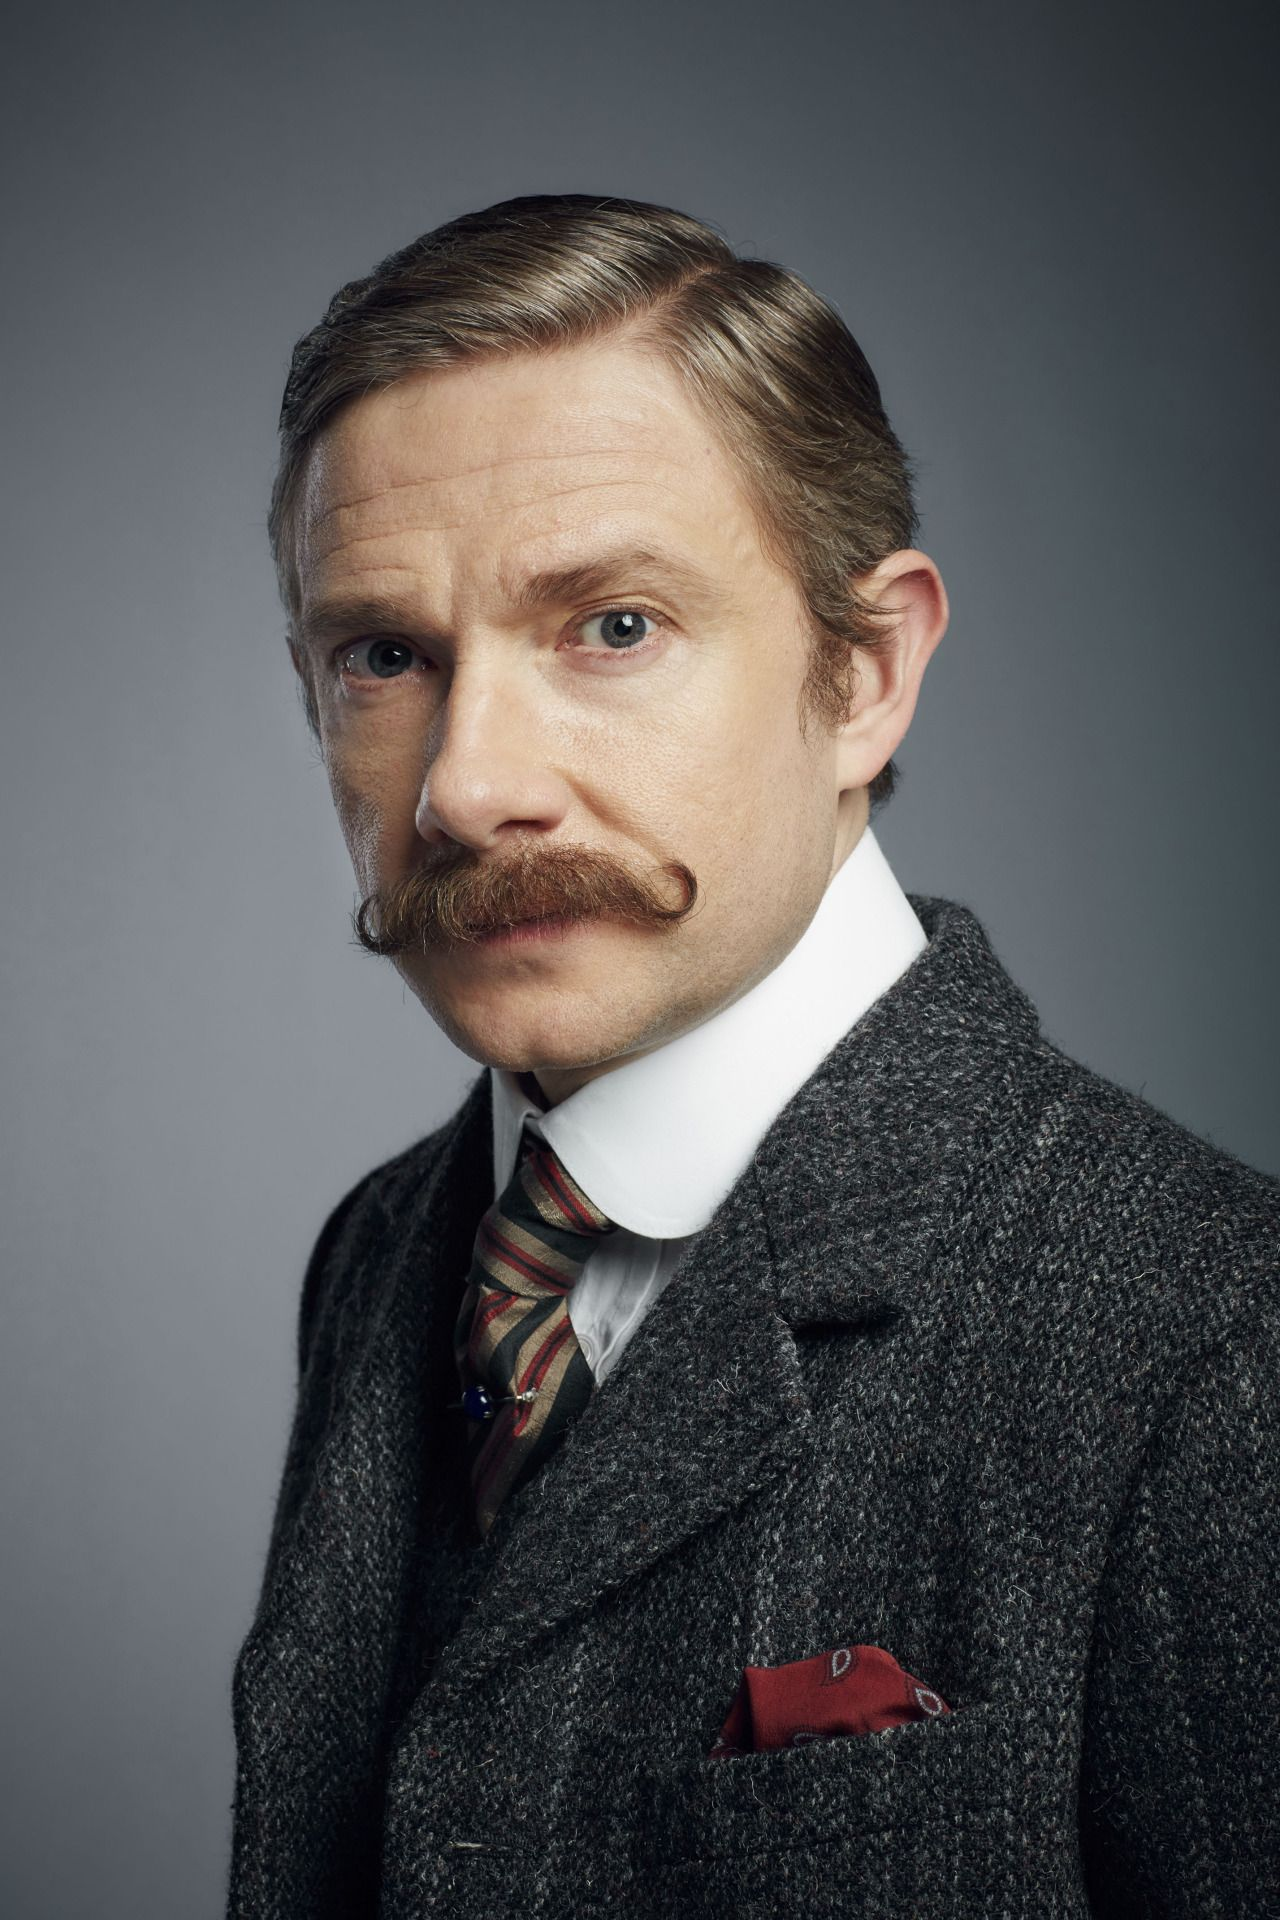 SHERLOCK (BBC/PBS) ~ John Watson (Martin Freeman) in the pre-Season 4 special, SHERLOCK: THE ABOMINABLE BRIDE, which premieres January 1, 2016 on BBC and PBS.